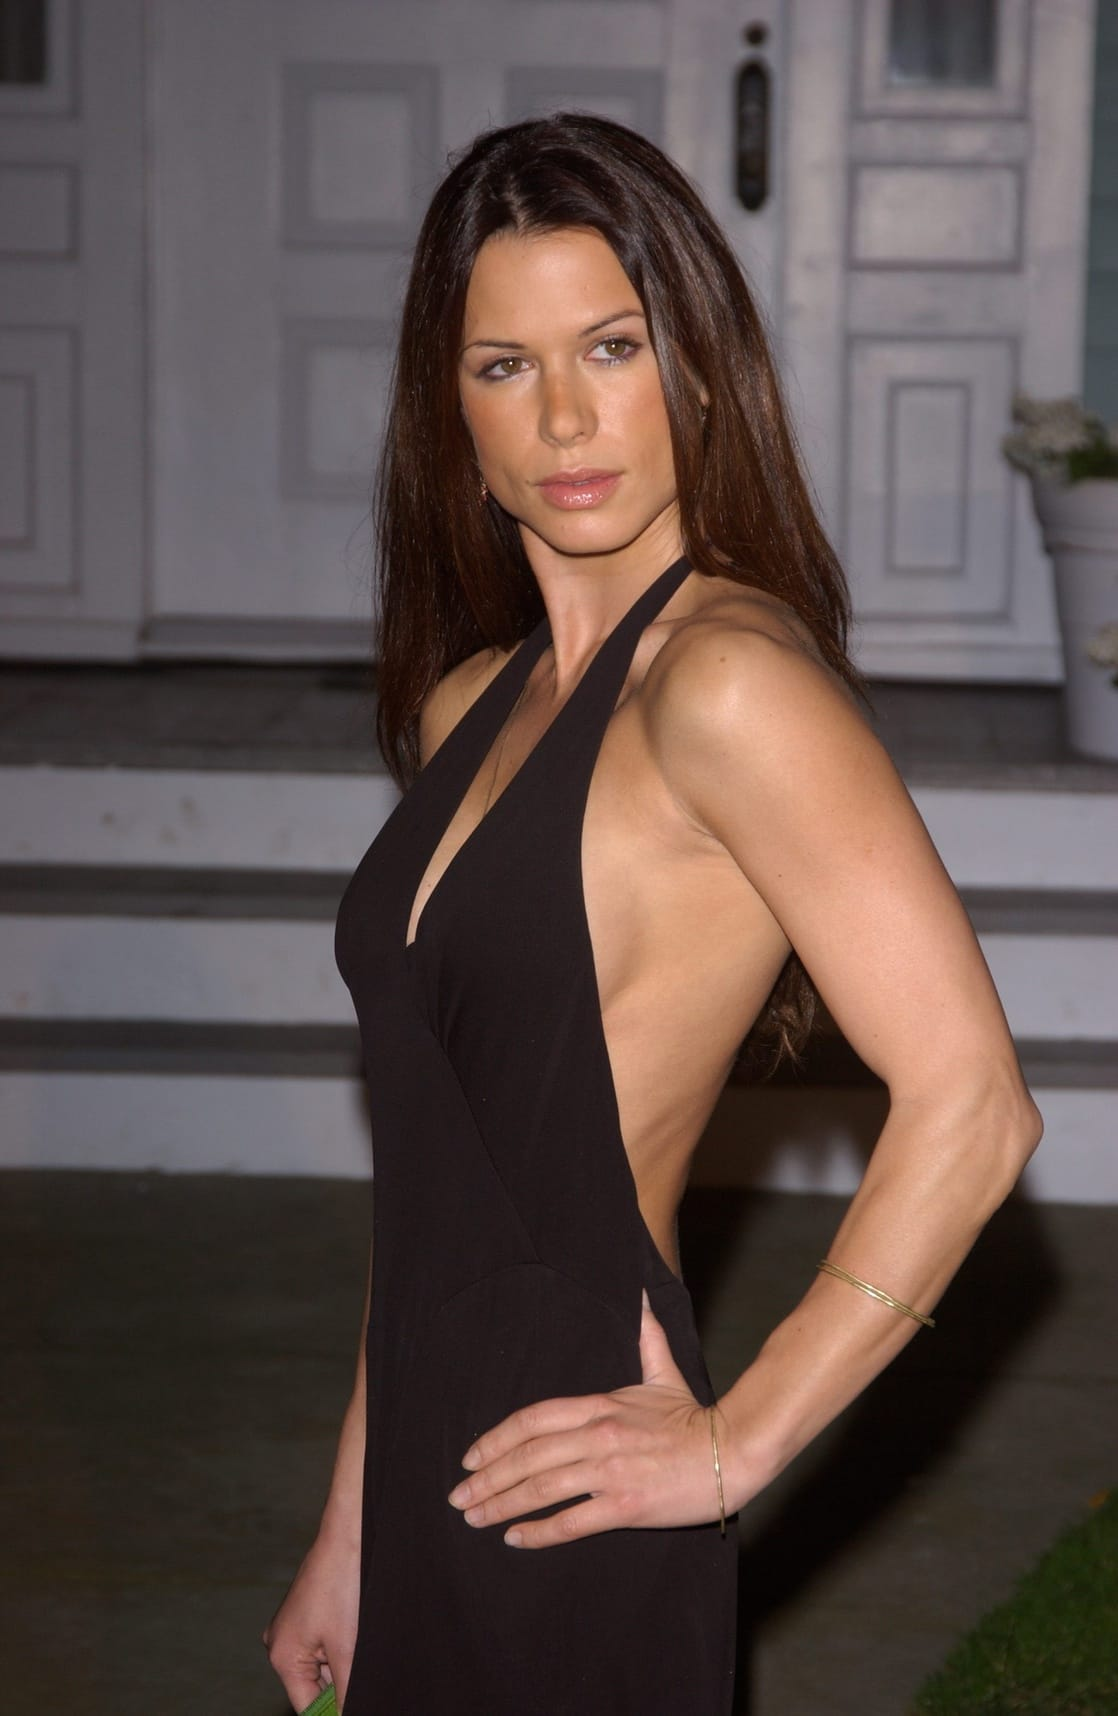 Hot Rhona Mitra nude photos 2019